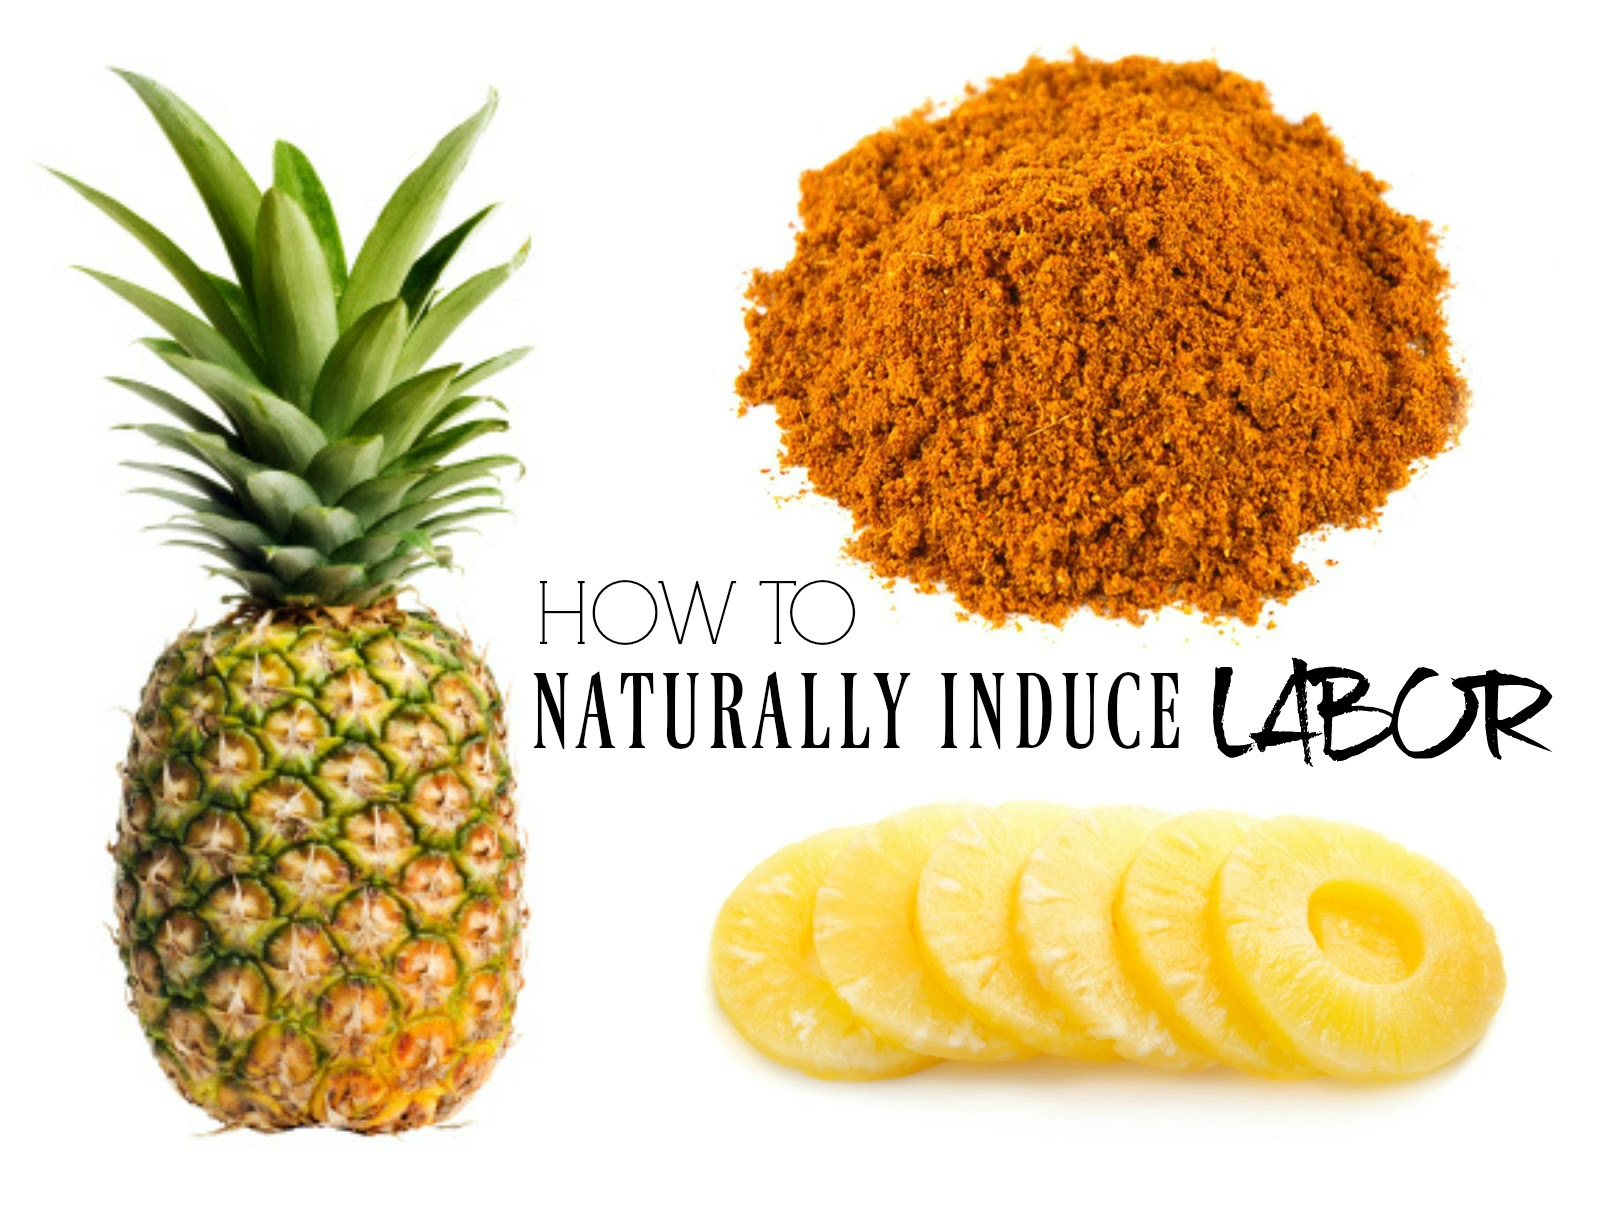 How to Naturally Induce Labor